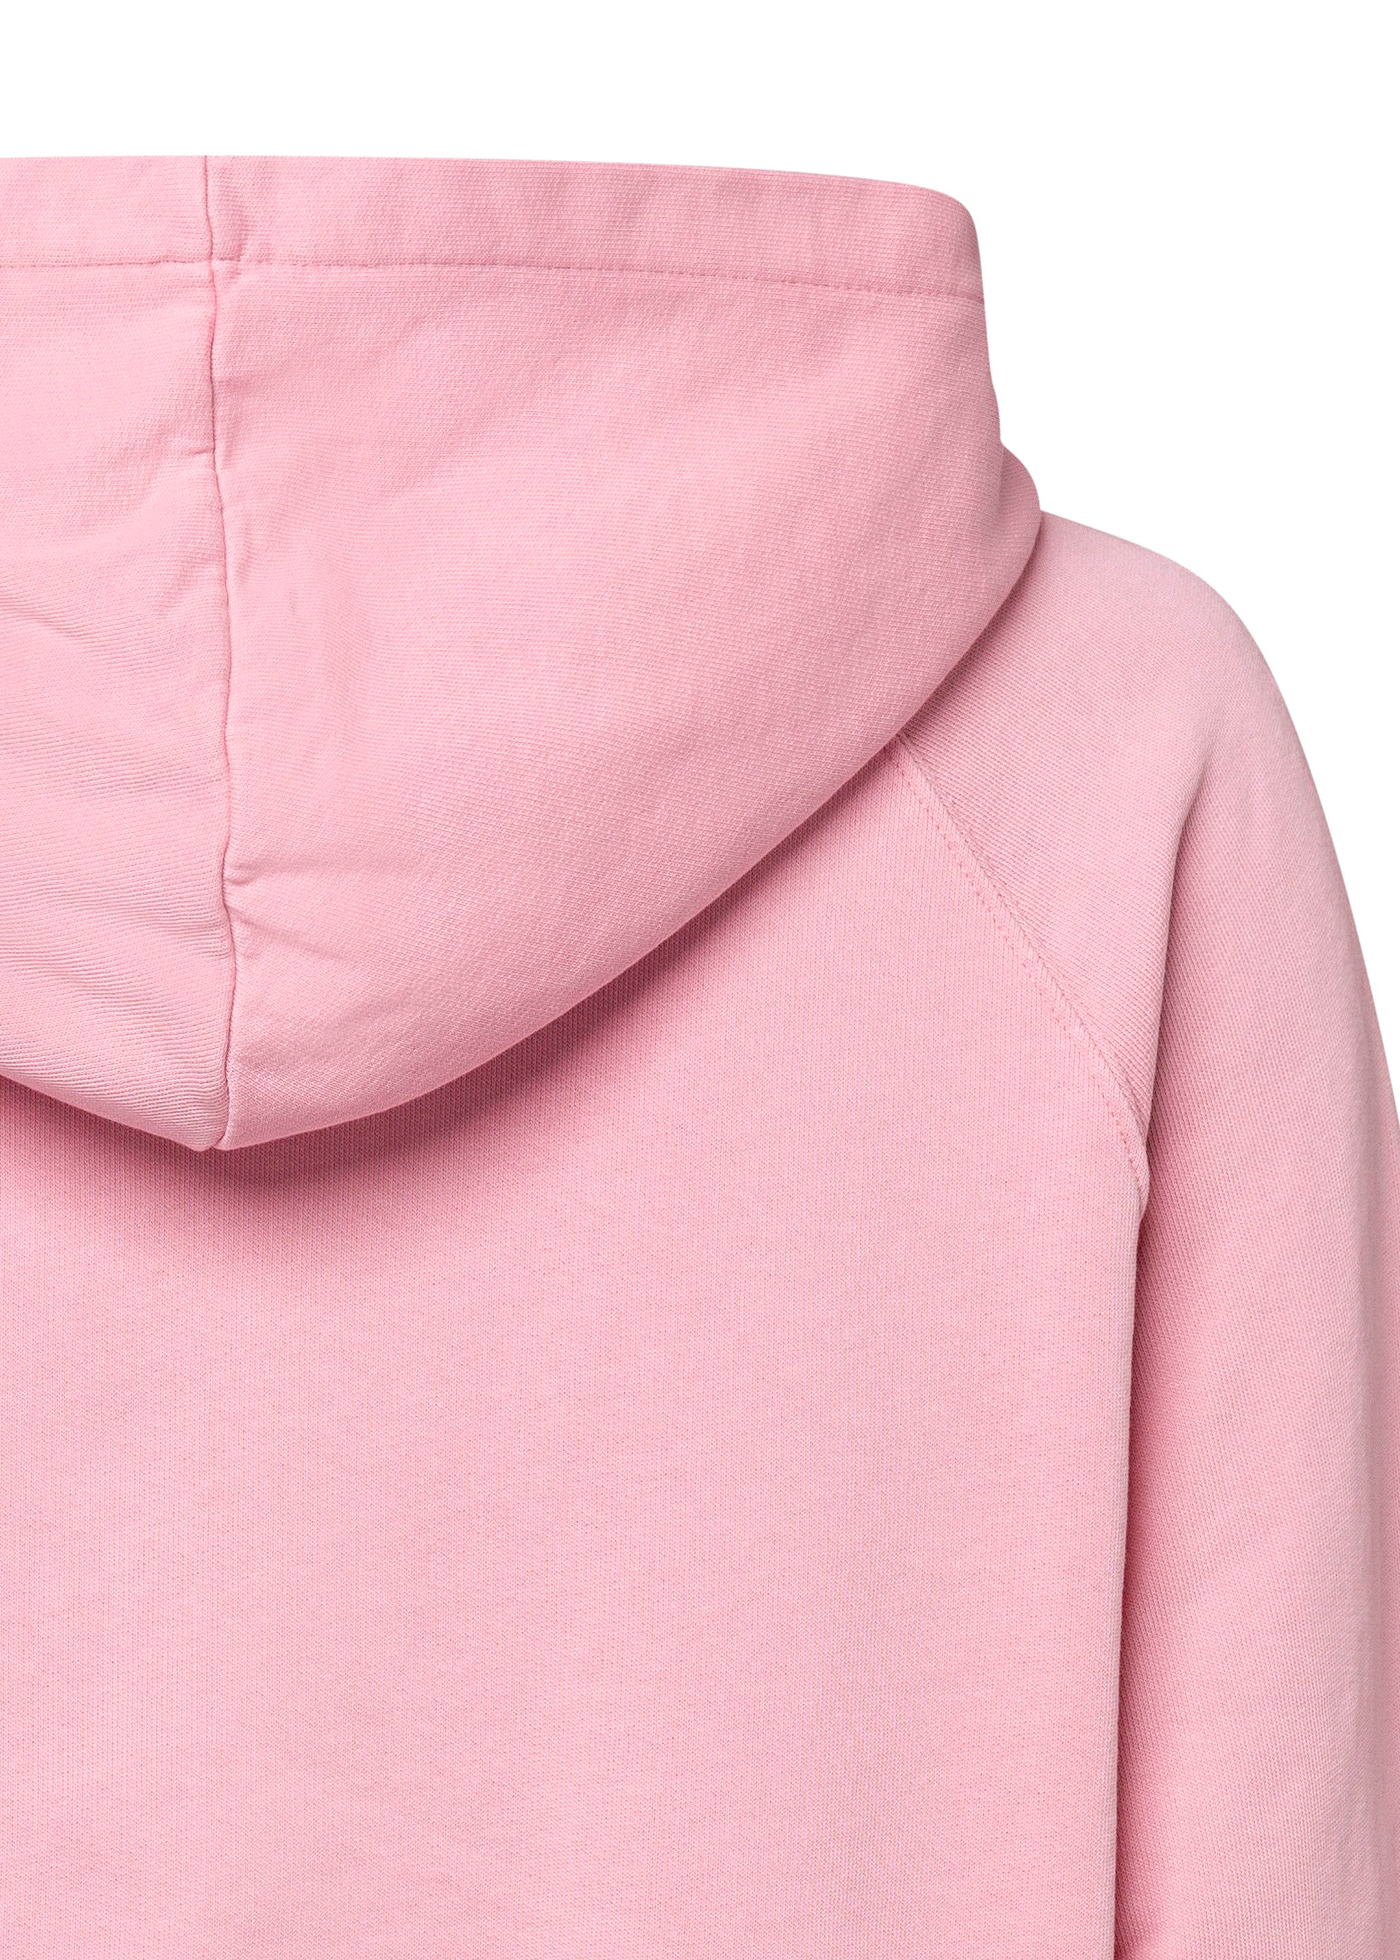 CO Fleece Fade Out H image number 3